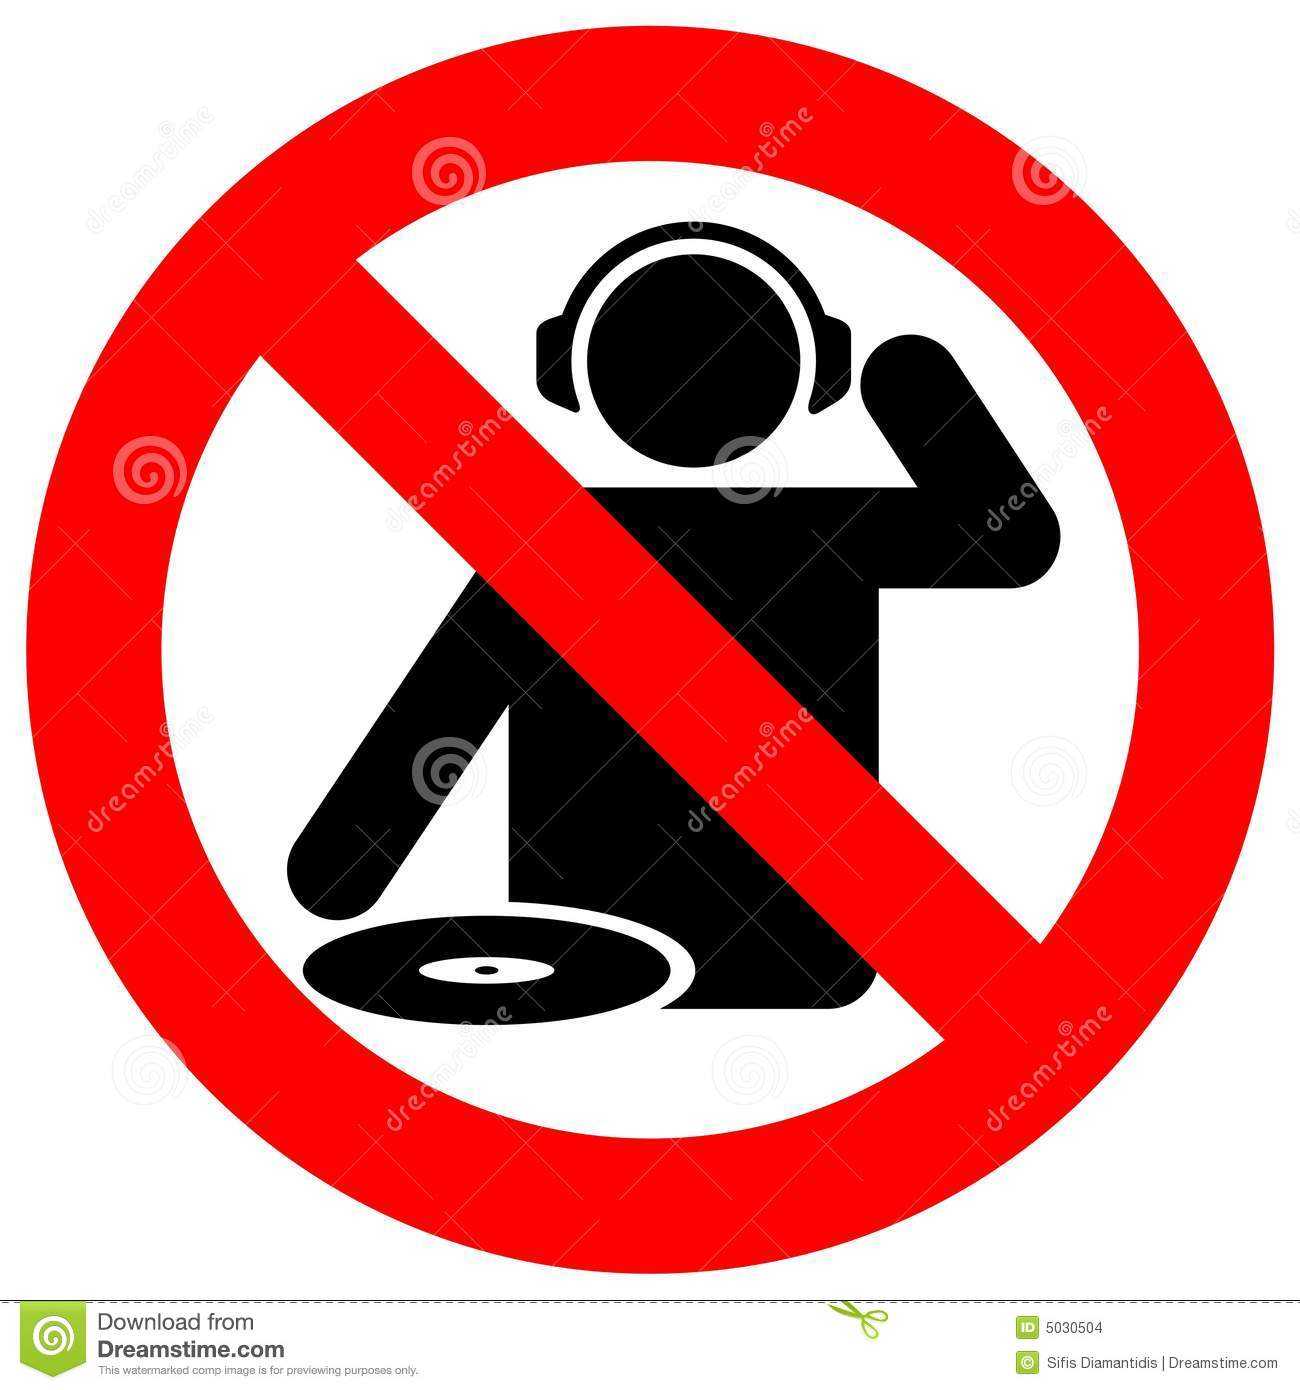 No dj zone warning sign